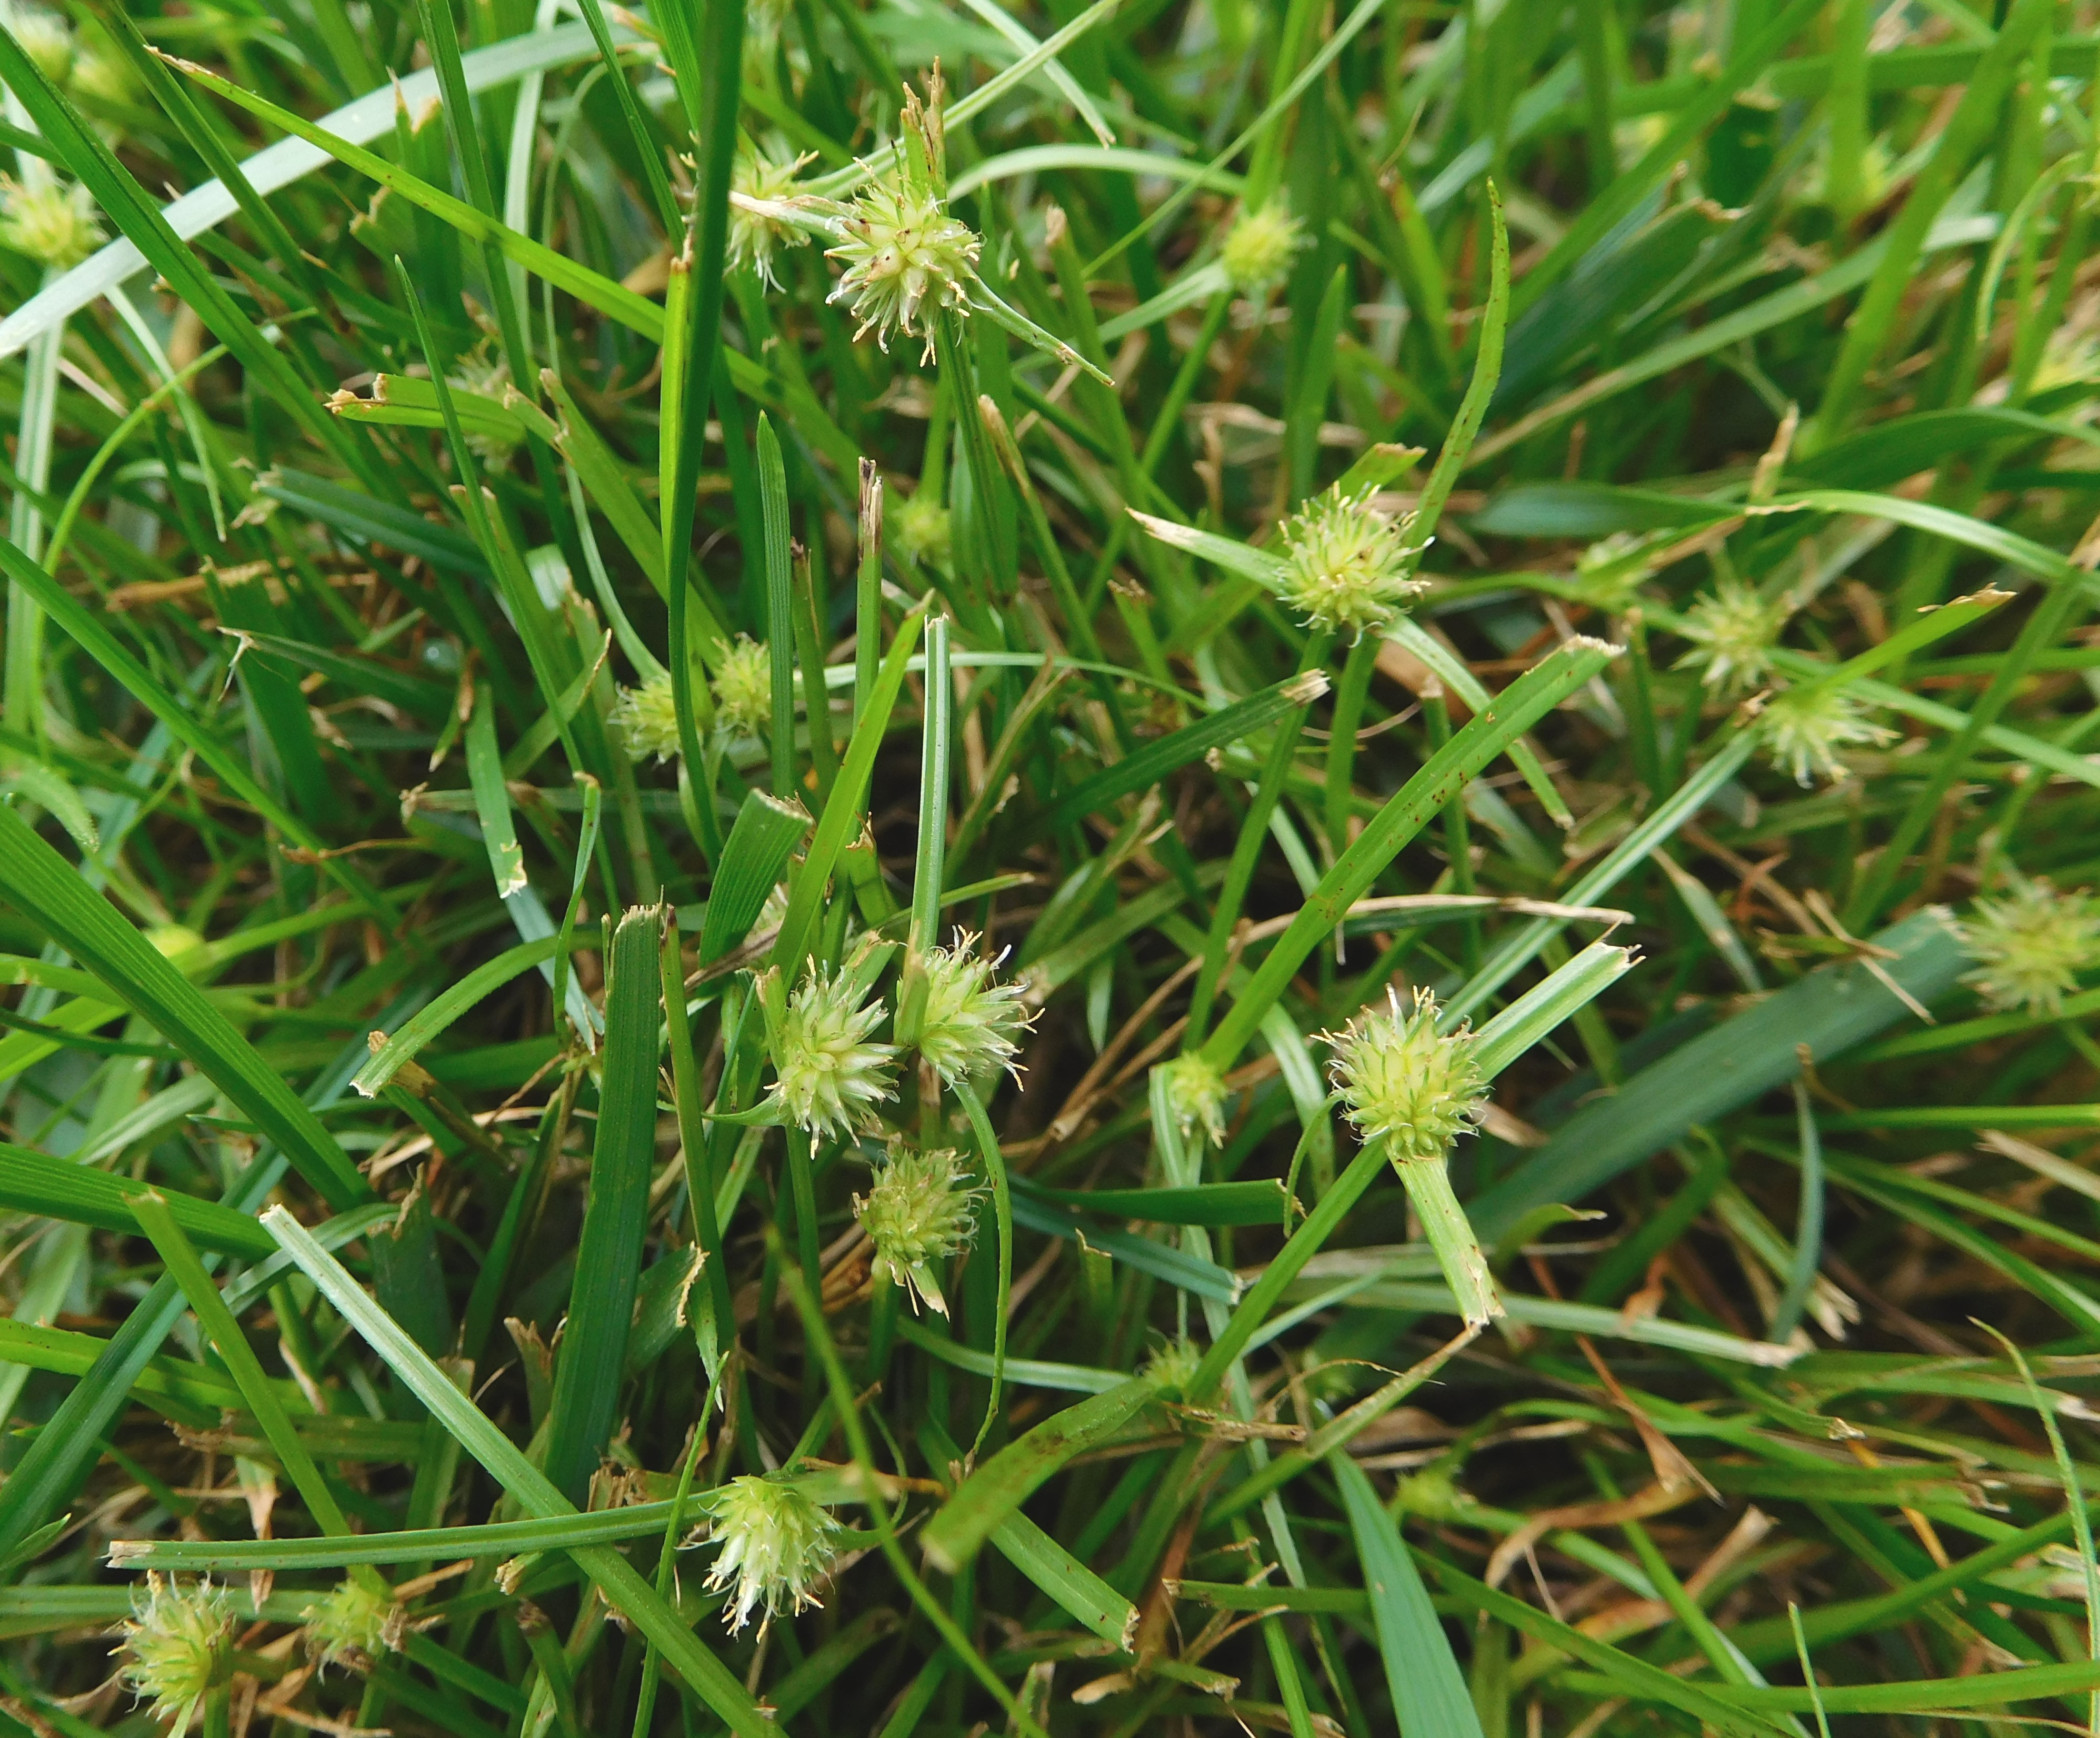 How to get rid of nut grass - Kyllinga Seedheads Develop In Globe Like Clusters Initially Are Yellow Green And Then Turn Brown Autumn Frosts Kill Leaves But Kyllinga Plants Survive